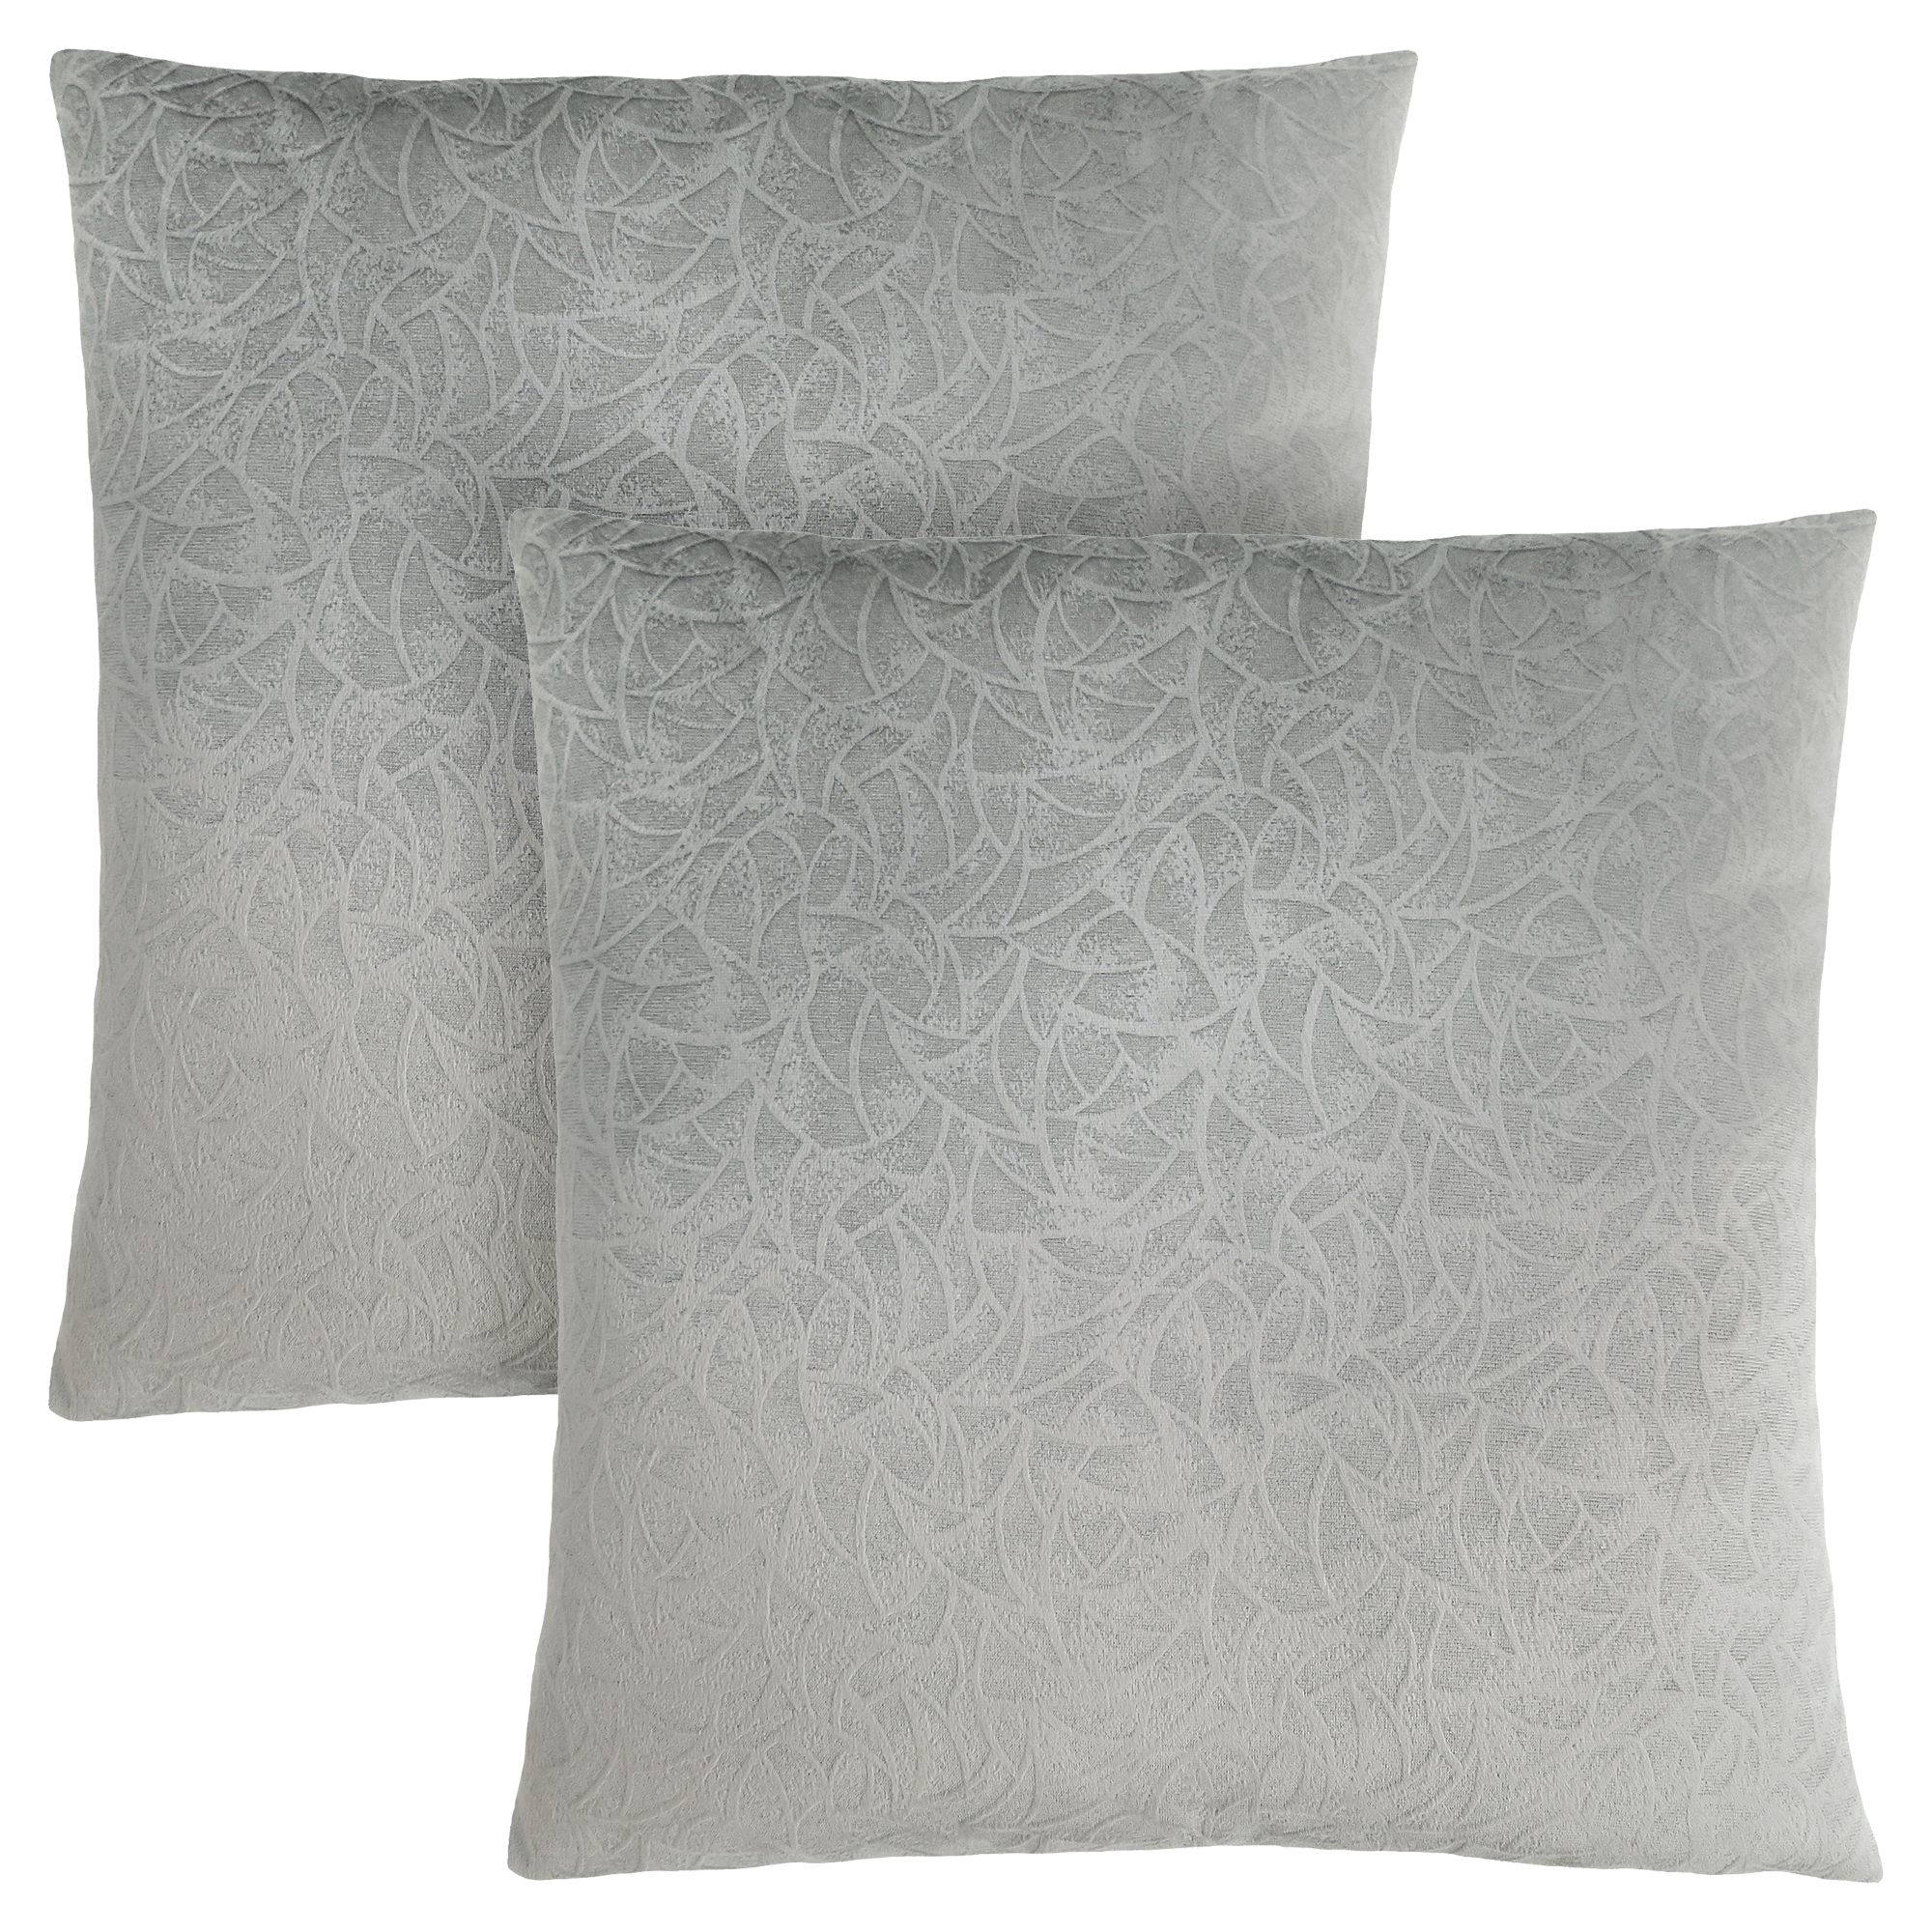 "PILLOW - 18""X 18"" / LIGHT GREY FLORAL VELVET / 2PCS"